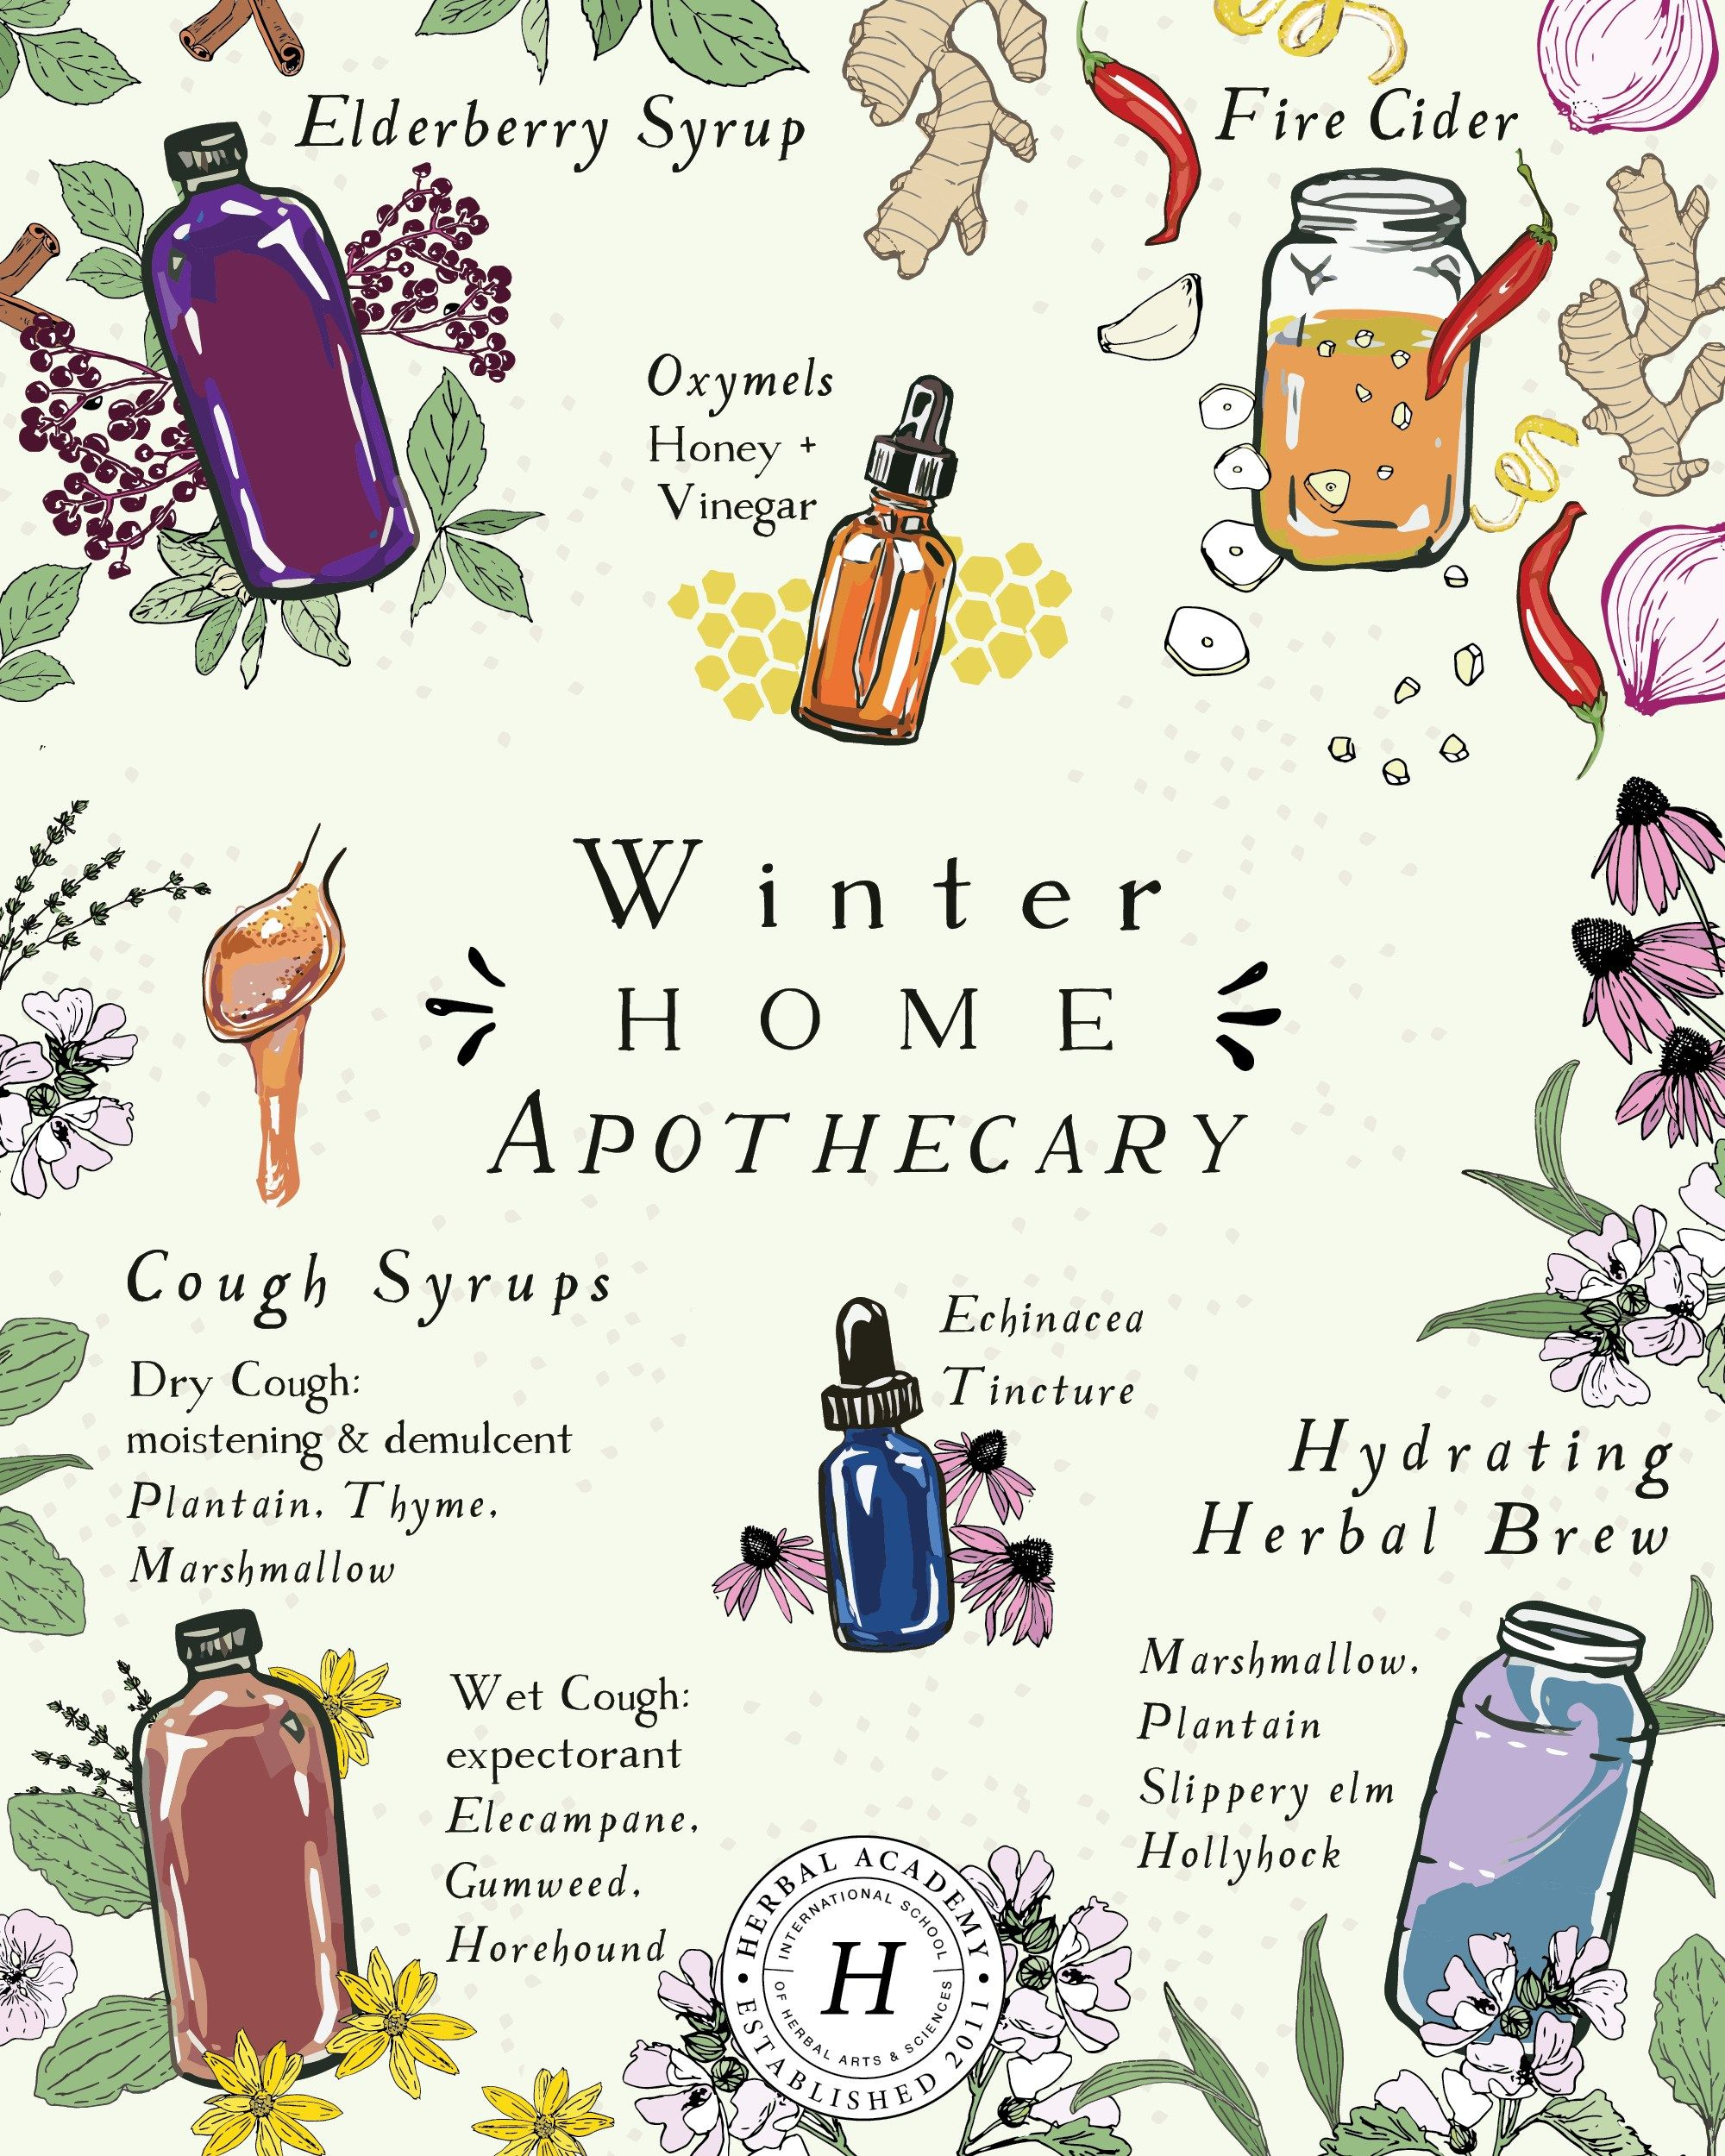 How To Stock Your Winter Home Apothecary | Herbal Academy